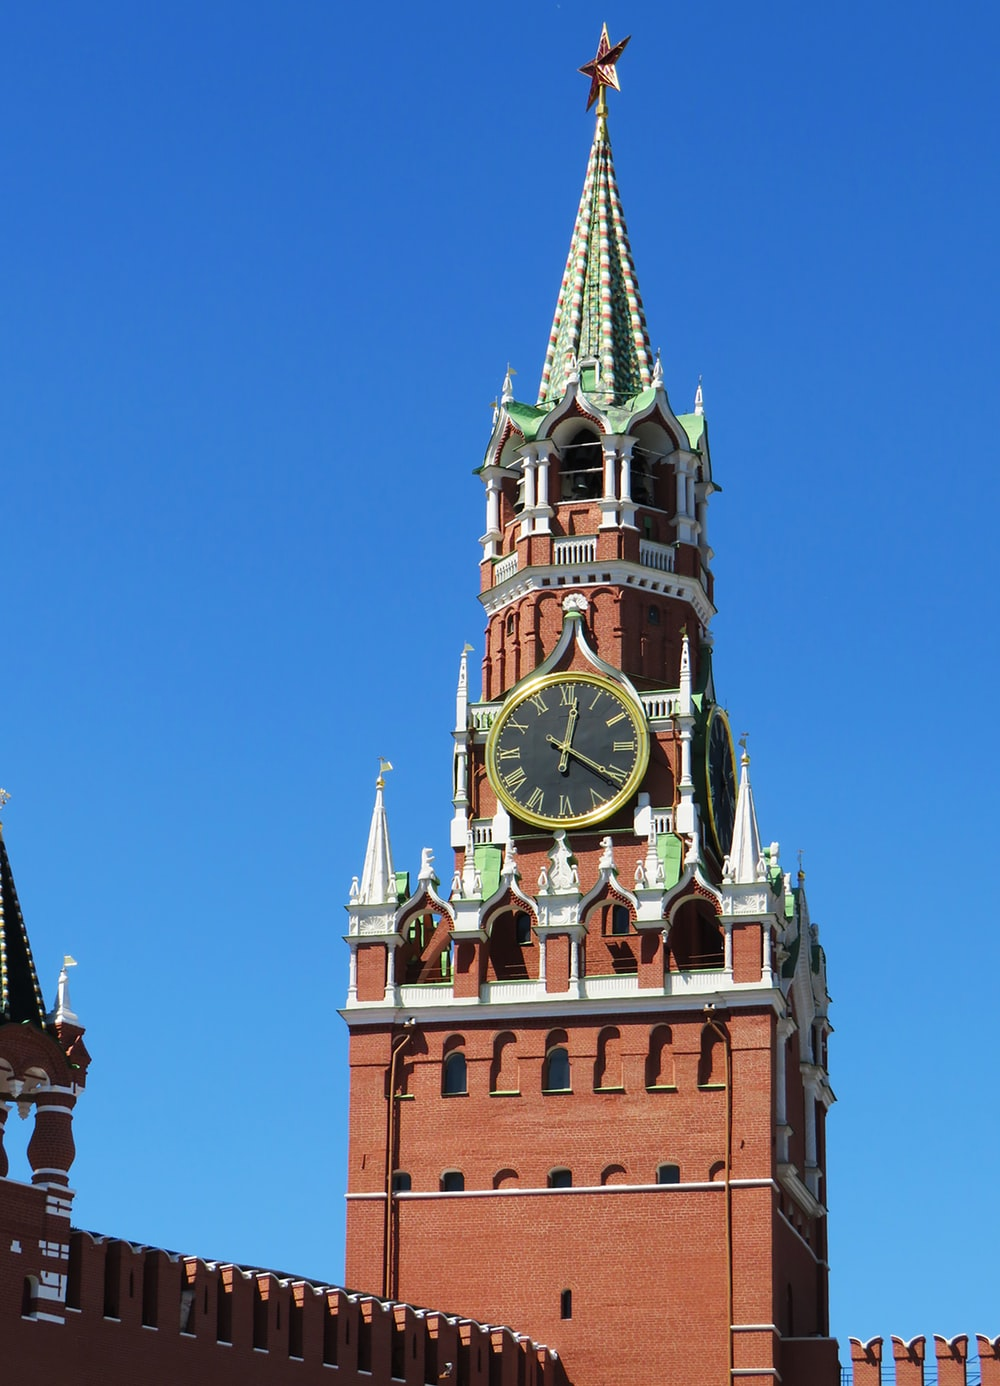 brown, green and white clock tower